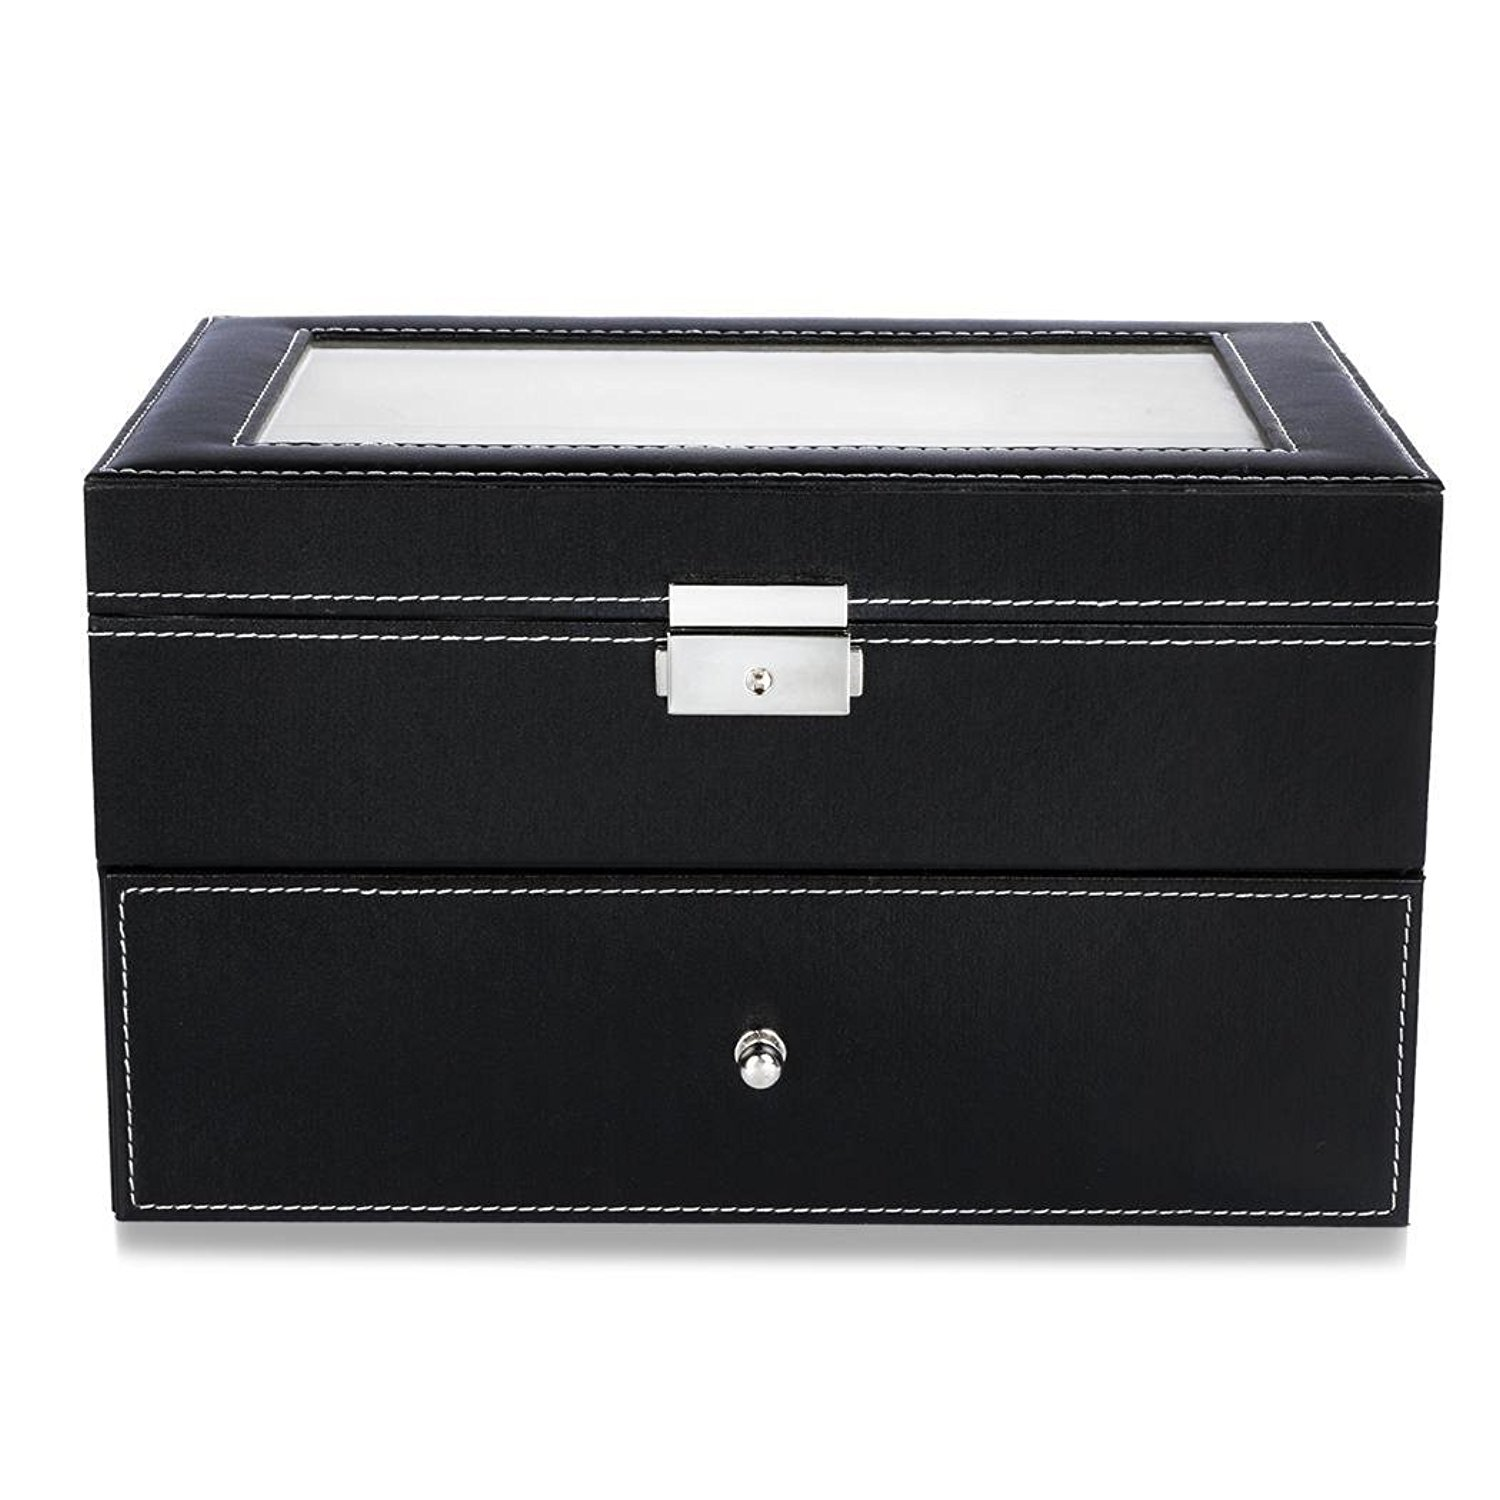 Cheap Watch Organizer Box India Find Watch Organizer Box India